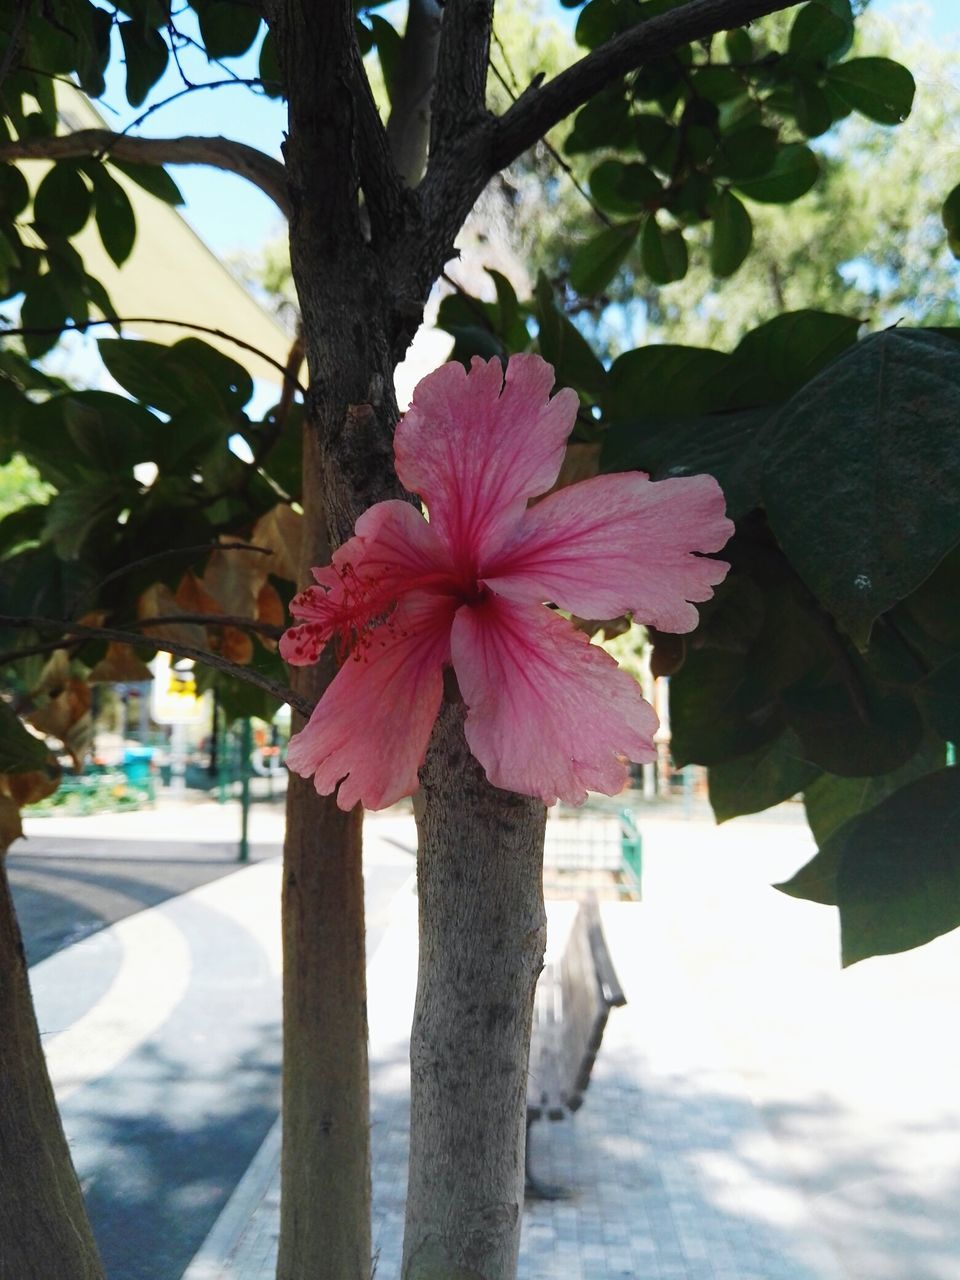 flower, beauty in nature, day, nature, growth, tree, outdoors, focus on foreground, no people, close-up, freshness, fragility, flower head, water, hibiscus